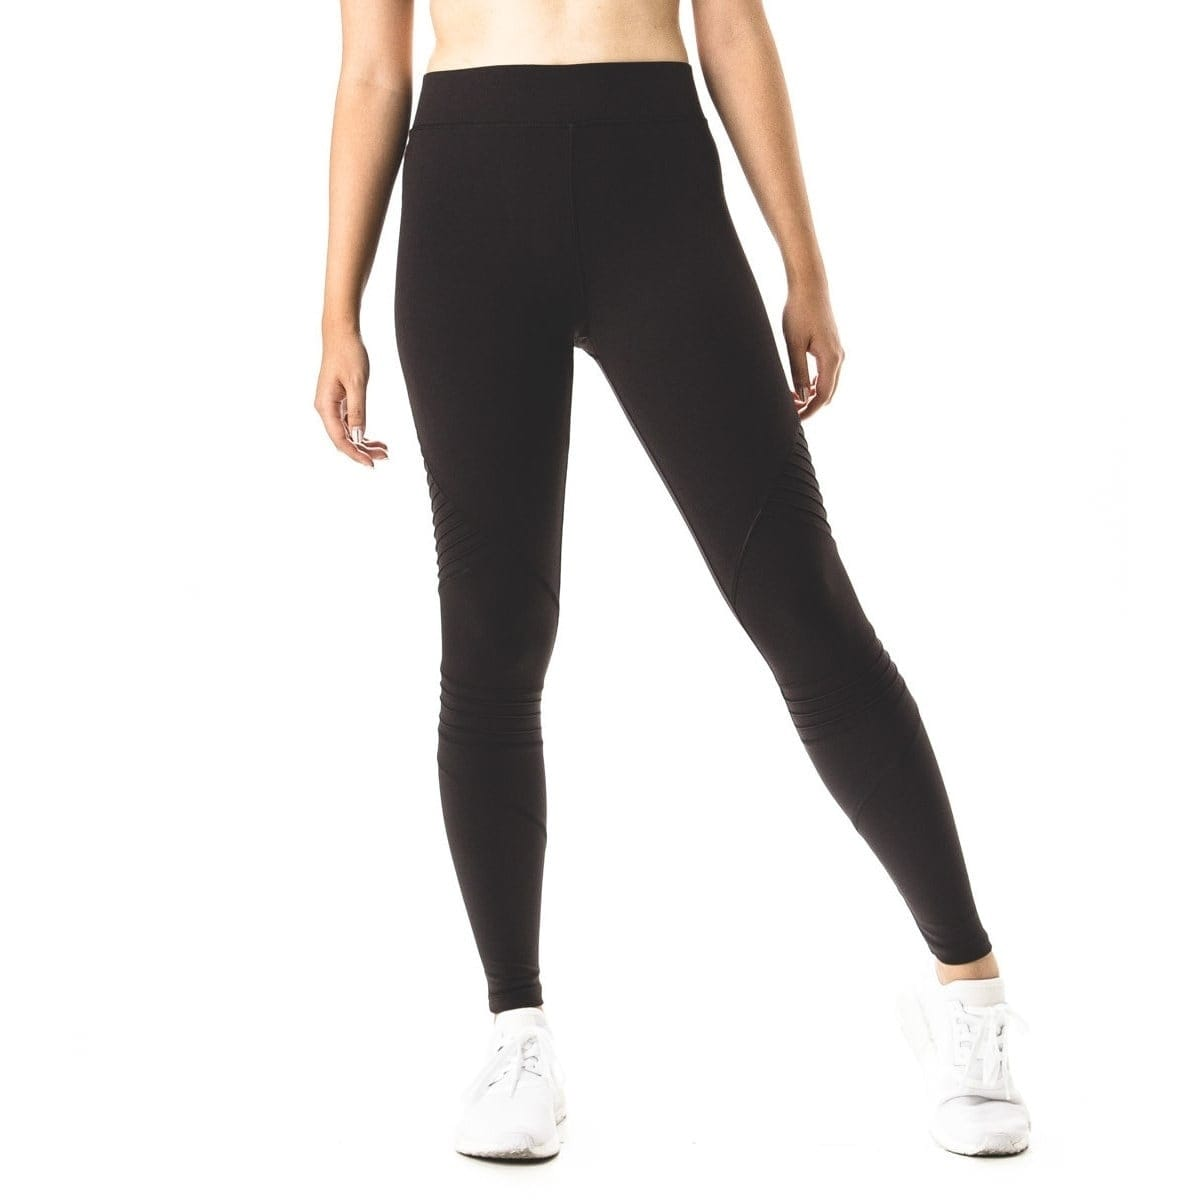 5d05a4ae68 Shop Figur Activ Women's Moto Performance Active Workout Sports Yoga  Leggings - On Sale - Free Shipping On Orders Over $45 - Overstock - 18082632